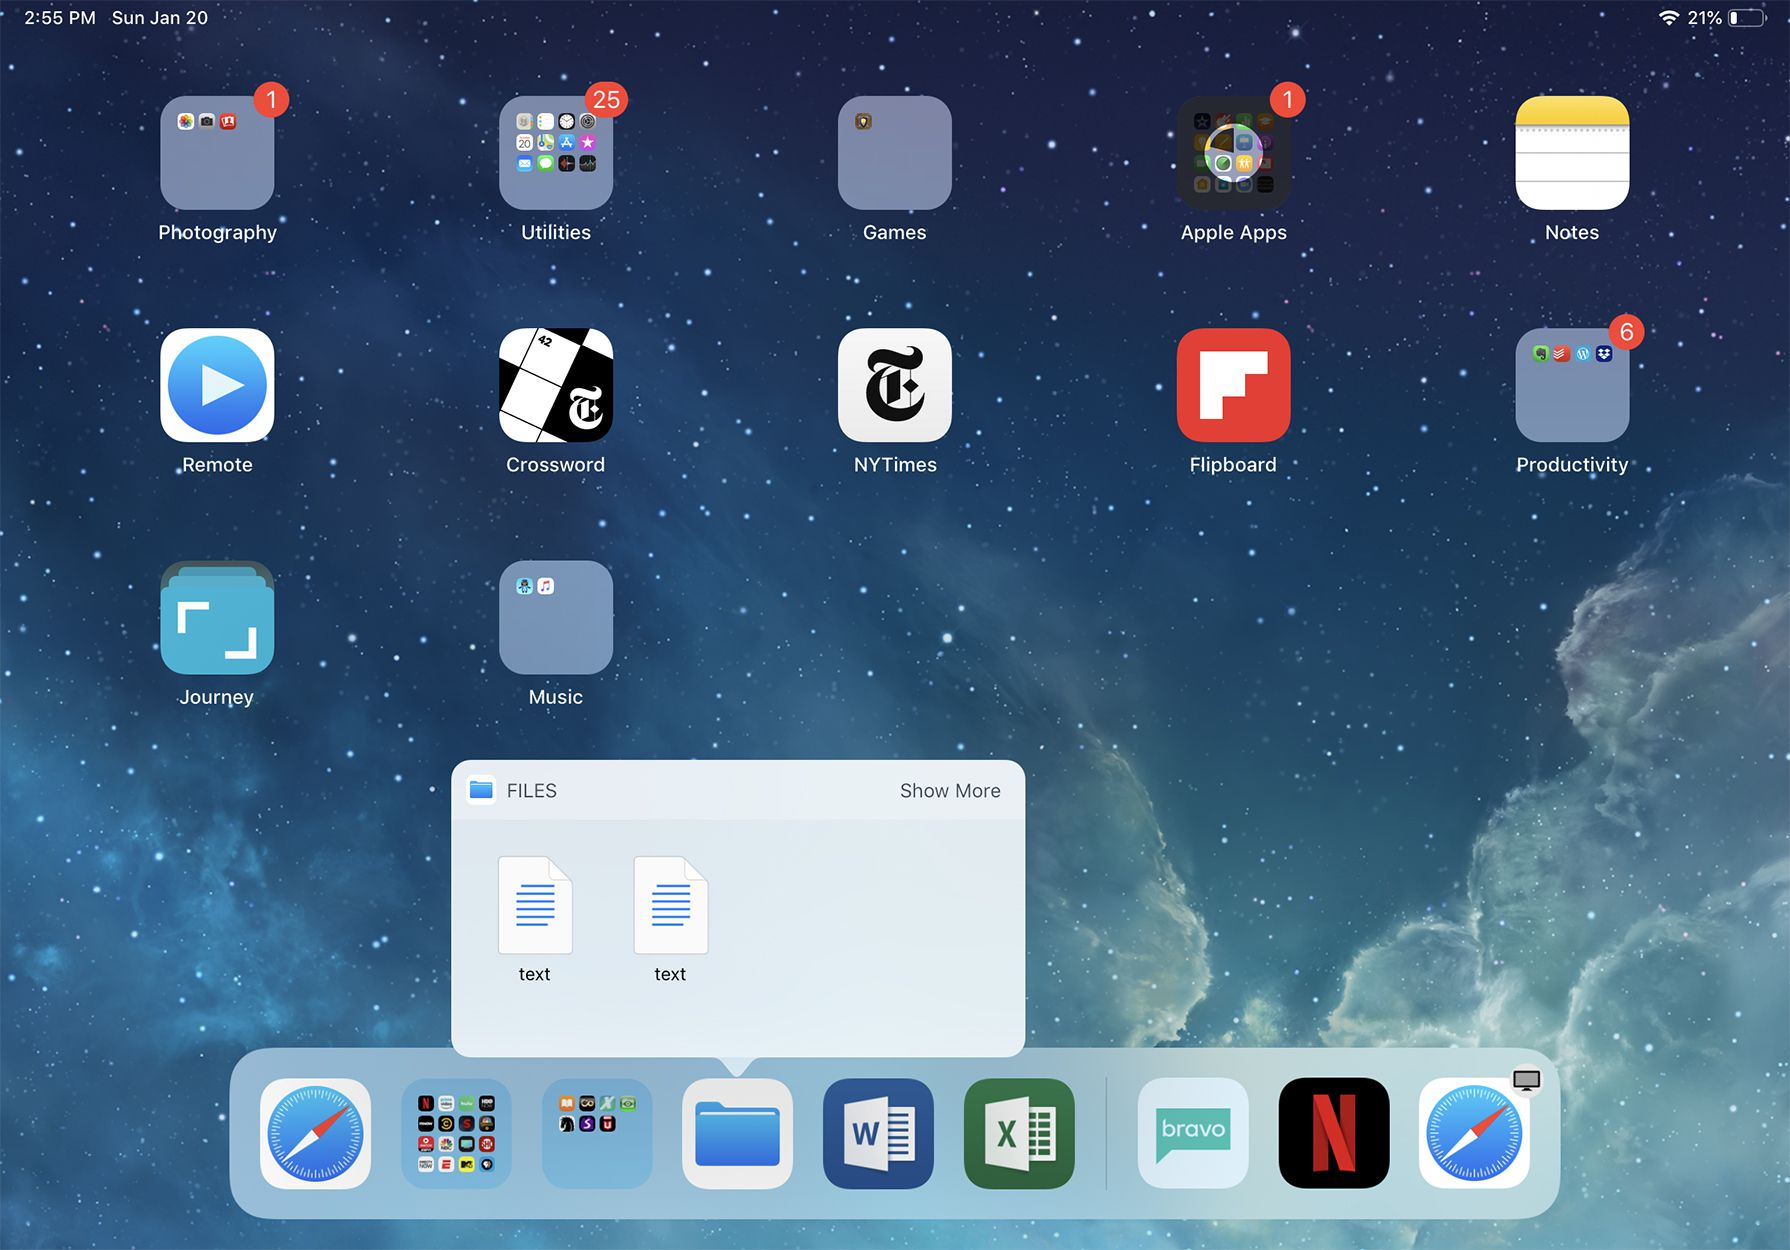 How to Use the iPad Dock In iOS 12